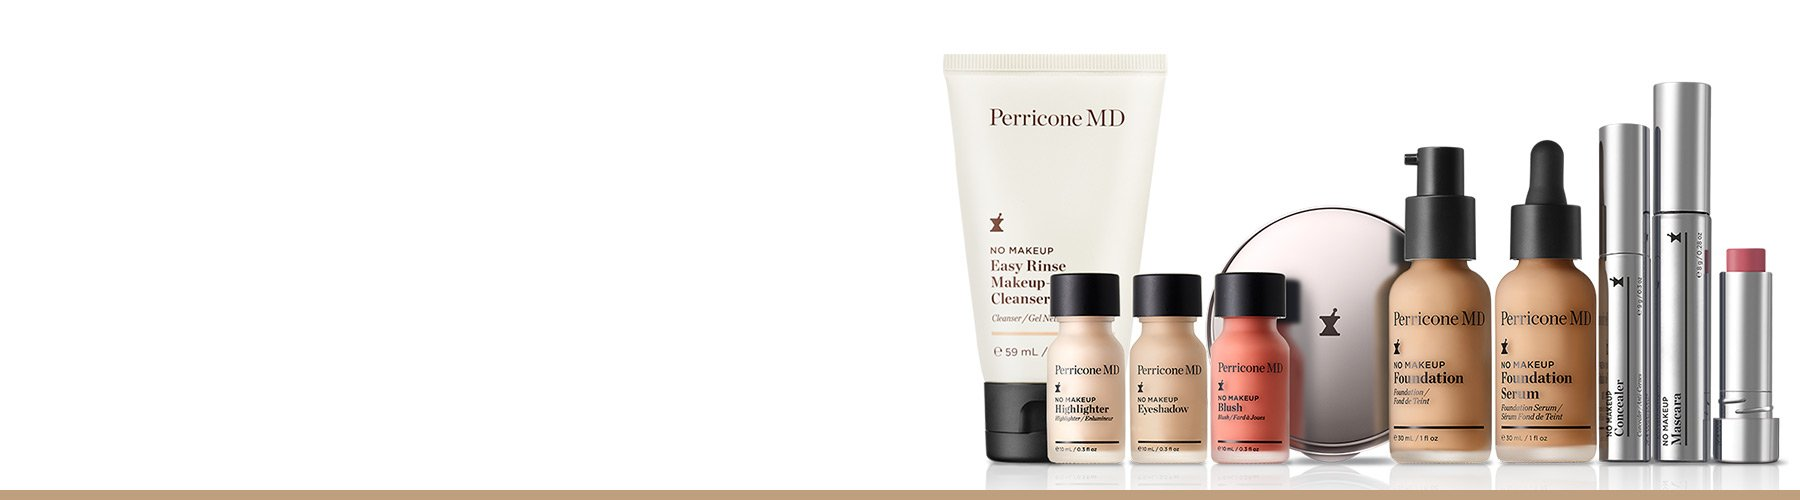 No Makeup Skincare Kits Perricone MD